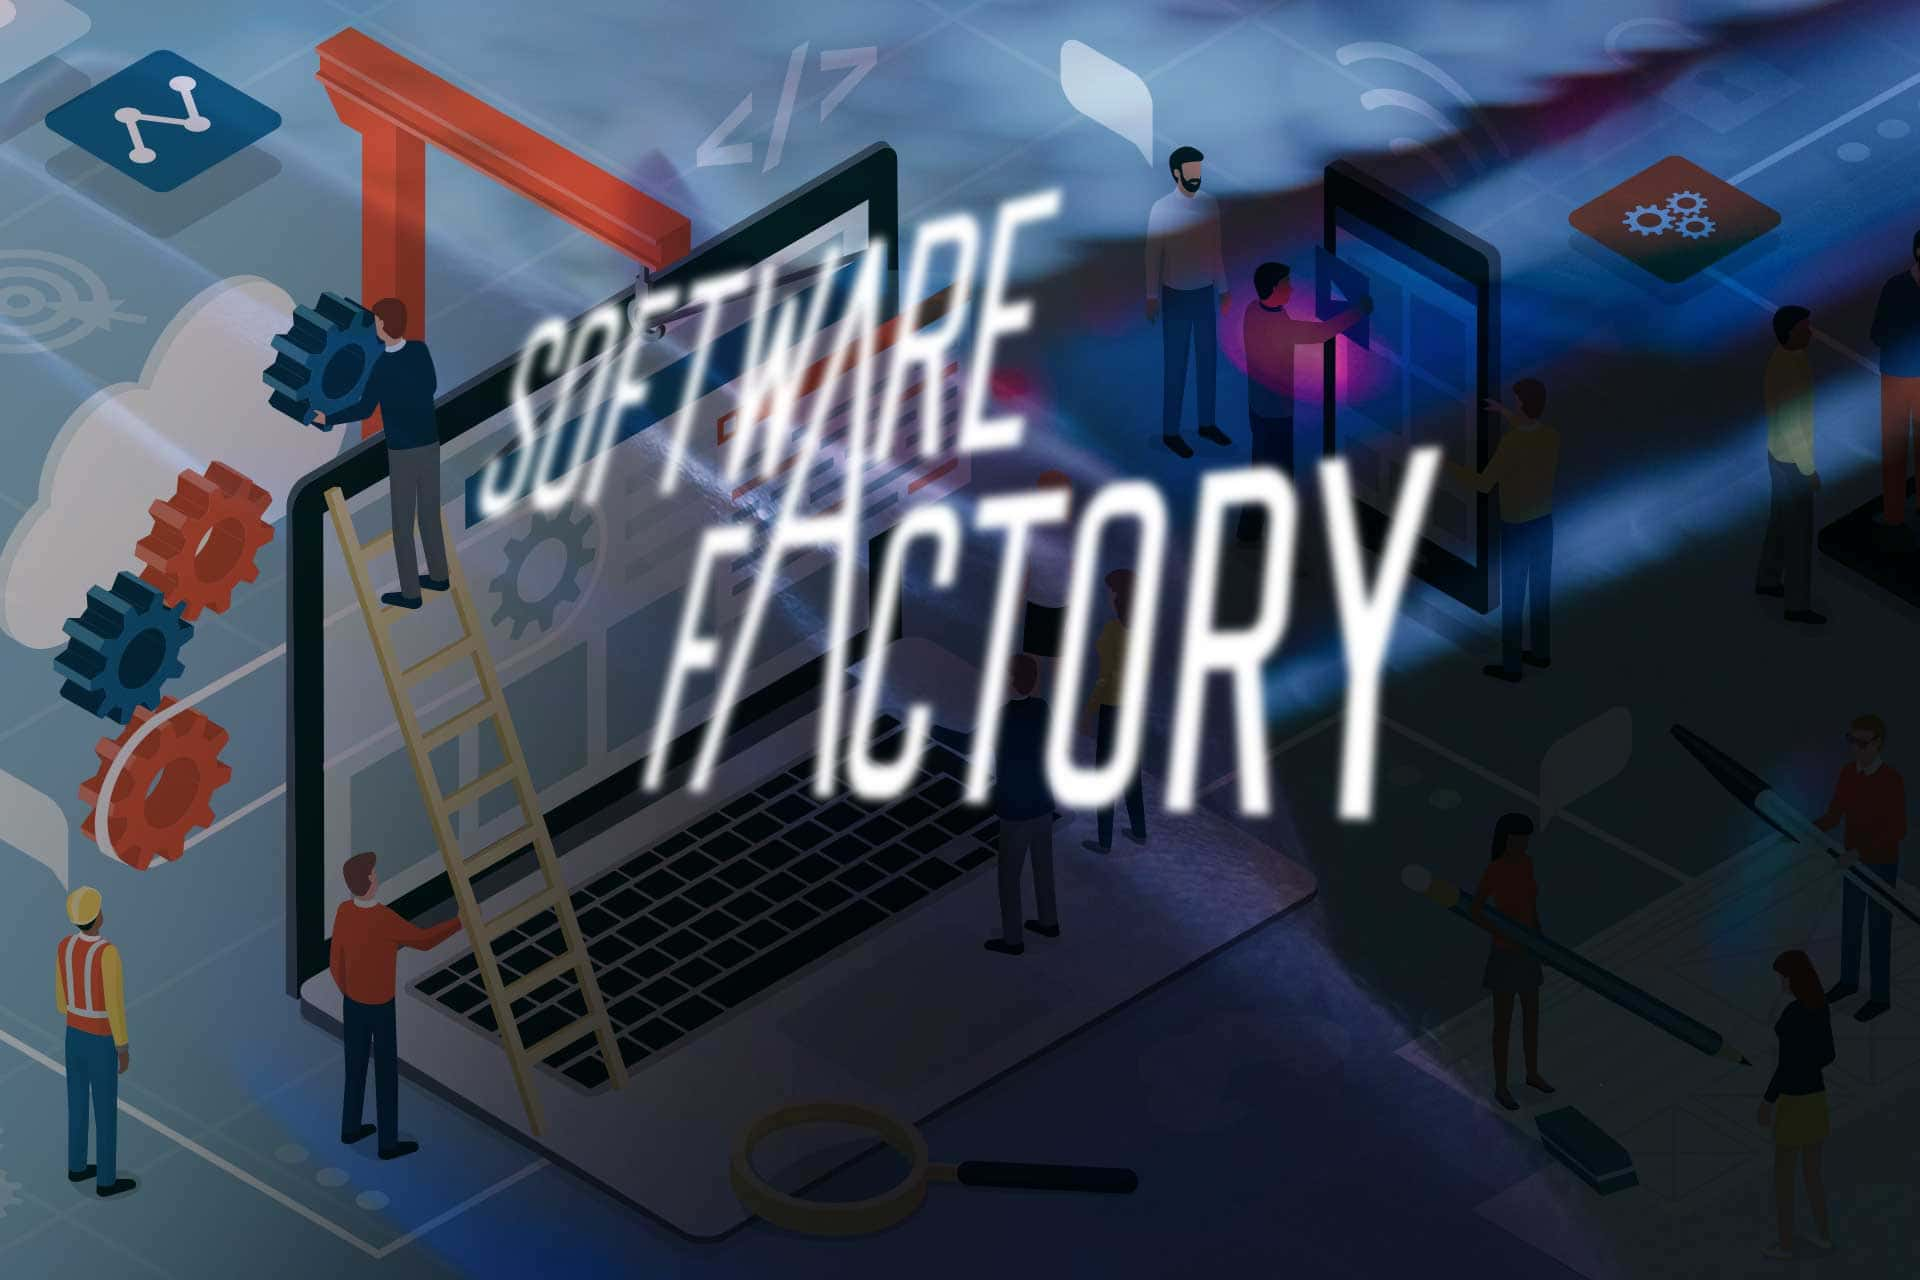 Banner Software Factory